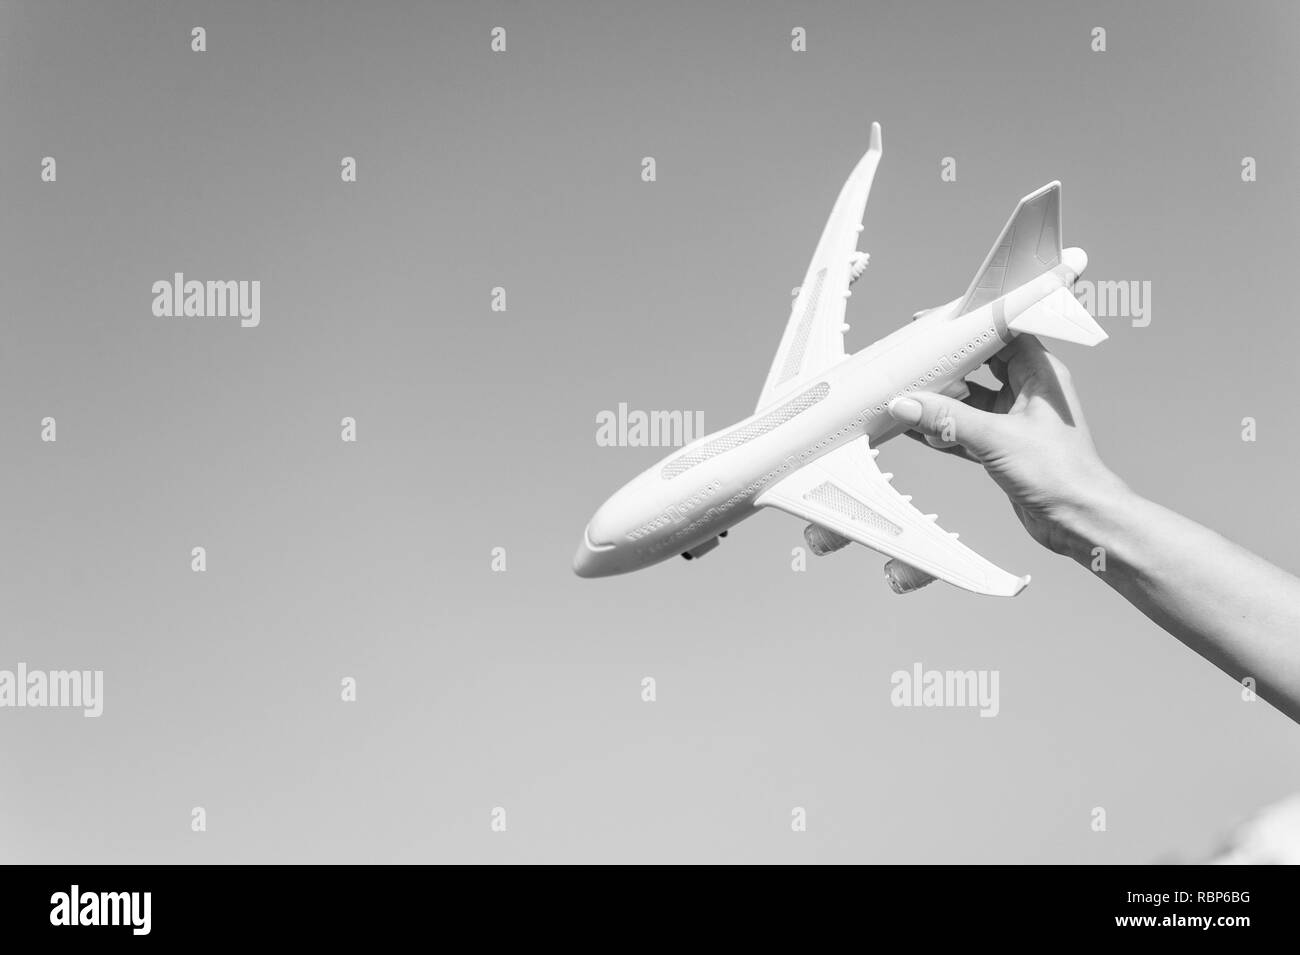 Plane model in hand. Airplane on blue sky. Jet or aircraft toy on sunny outdoor. Travel by air transport, aviation. Symbol of wanderlust, trip and vacation. Dream and imagination concept, copy space. - Stock Image